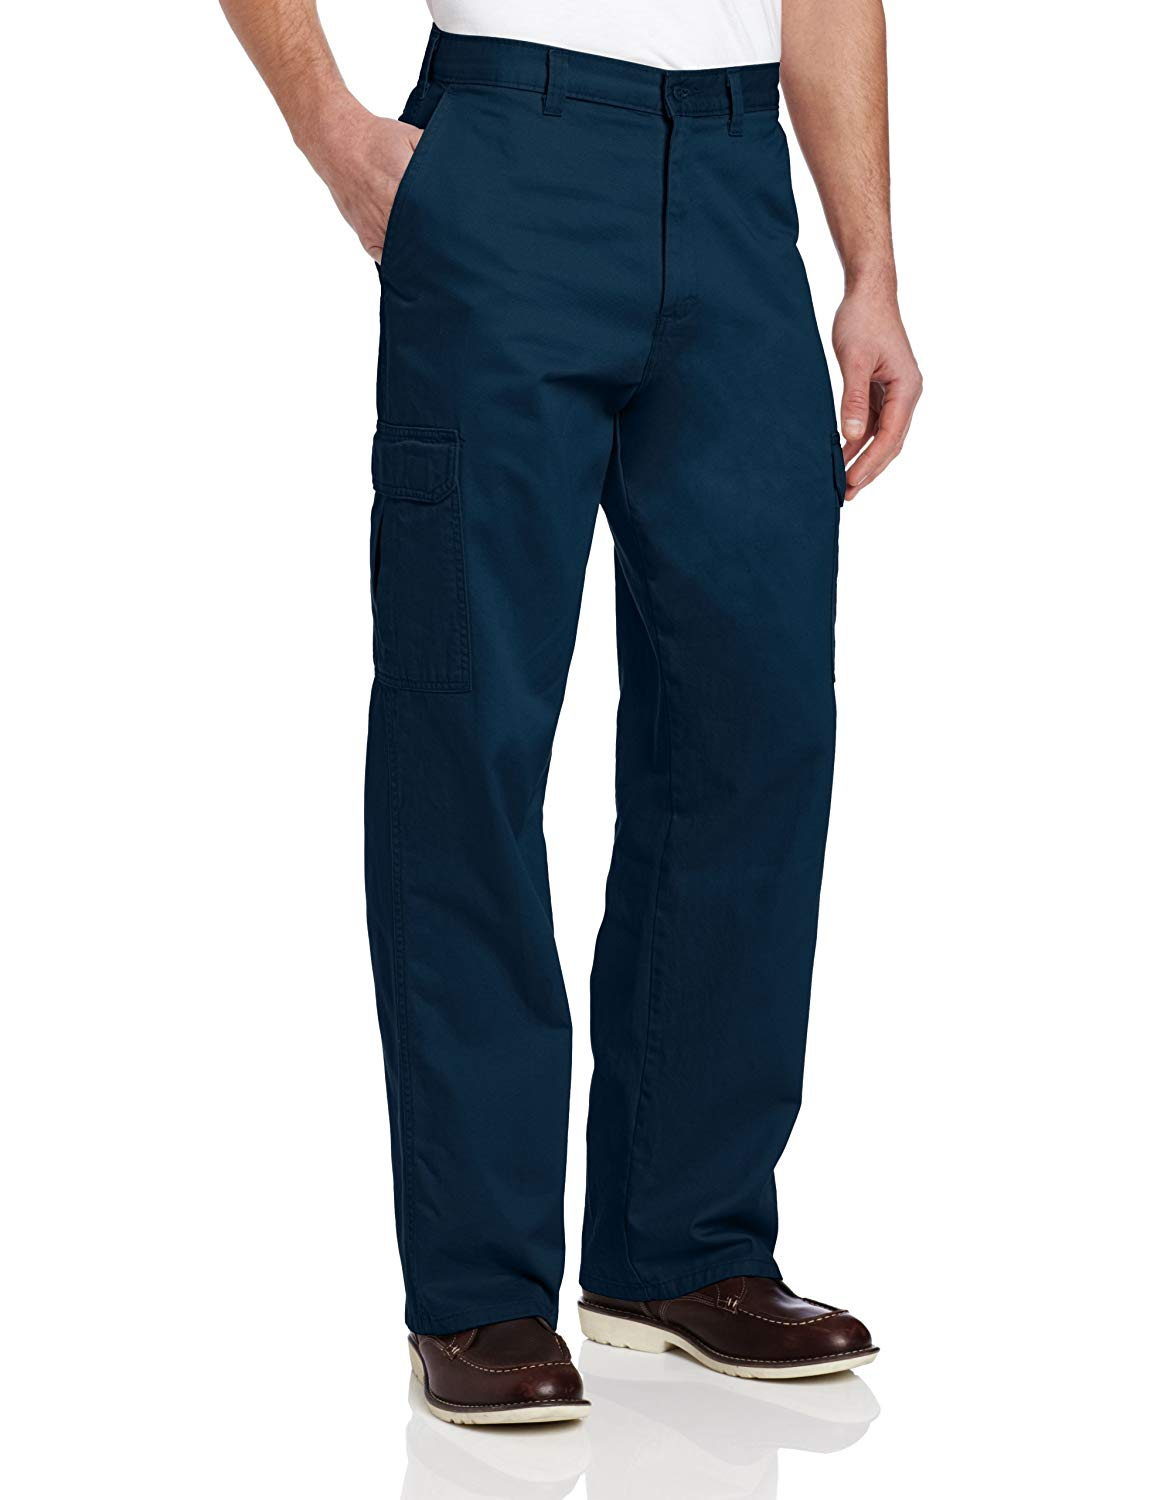 Dickies-Mens-Pants-Navy-Blue-Size-40X32-Loose-Fit-Cargo-Straight